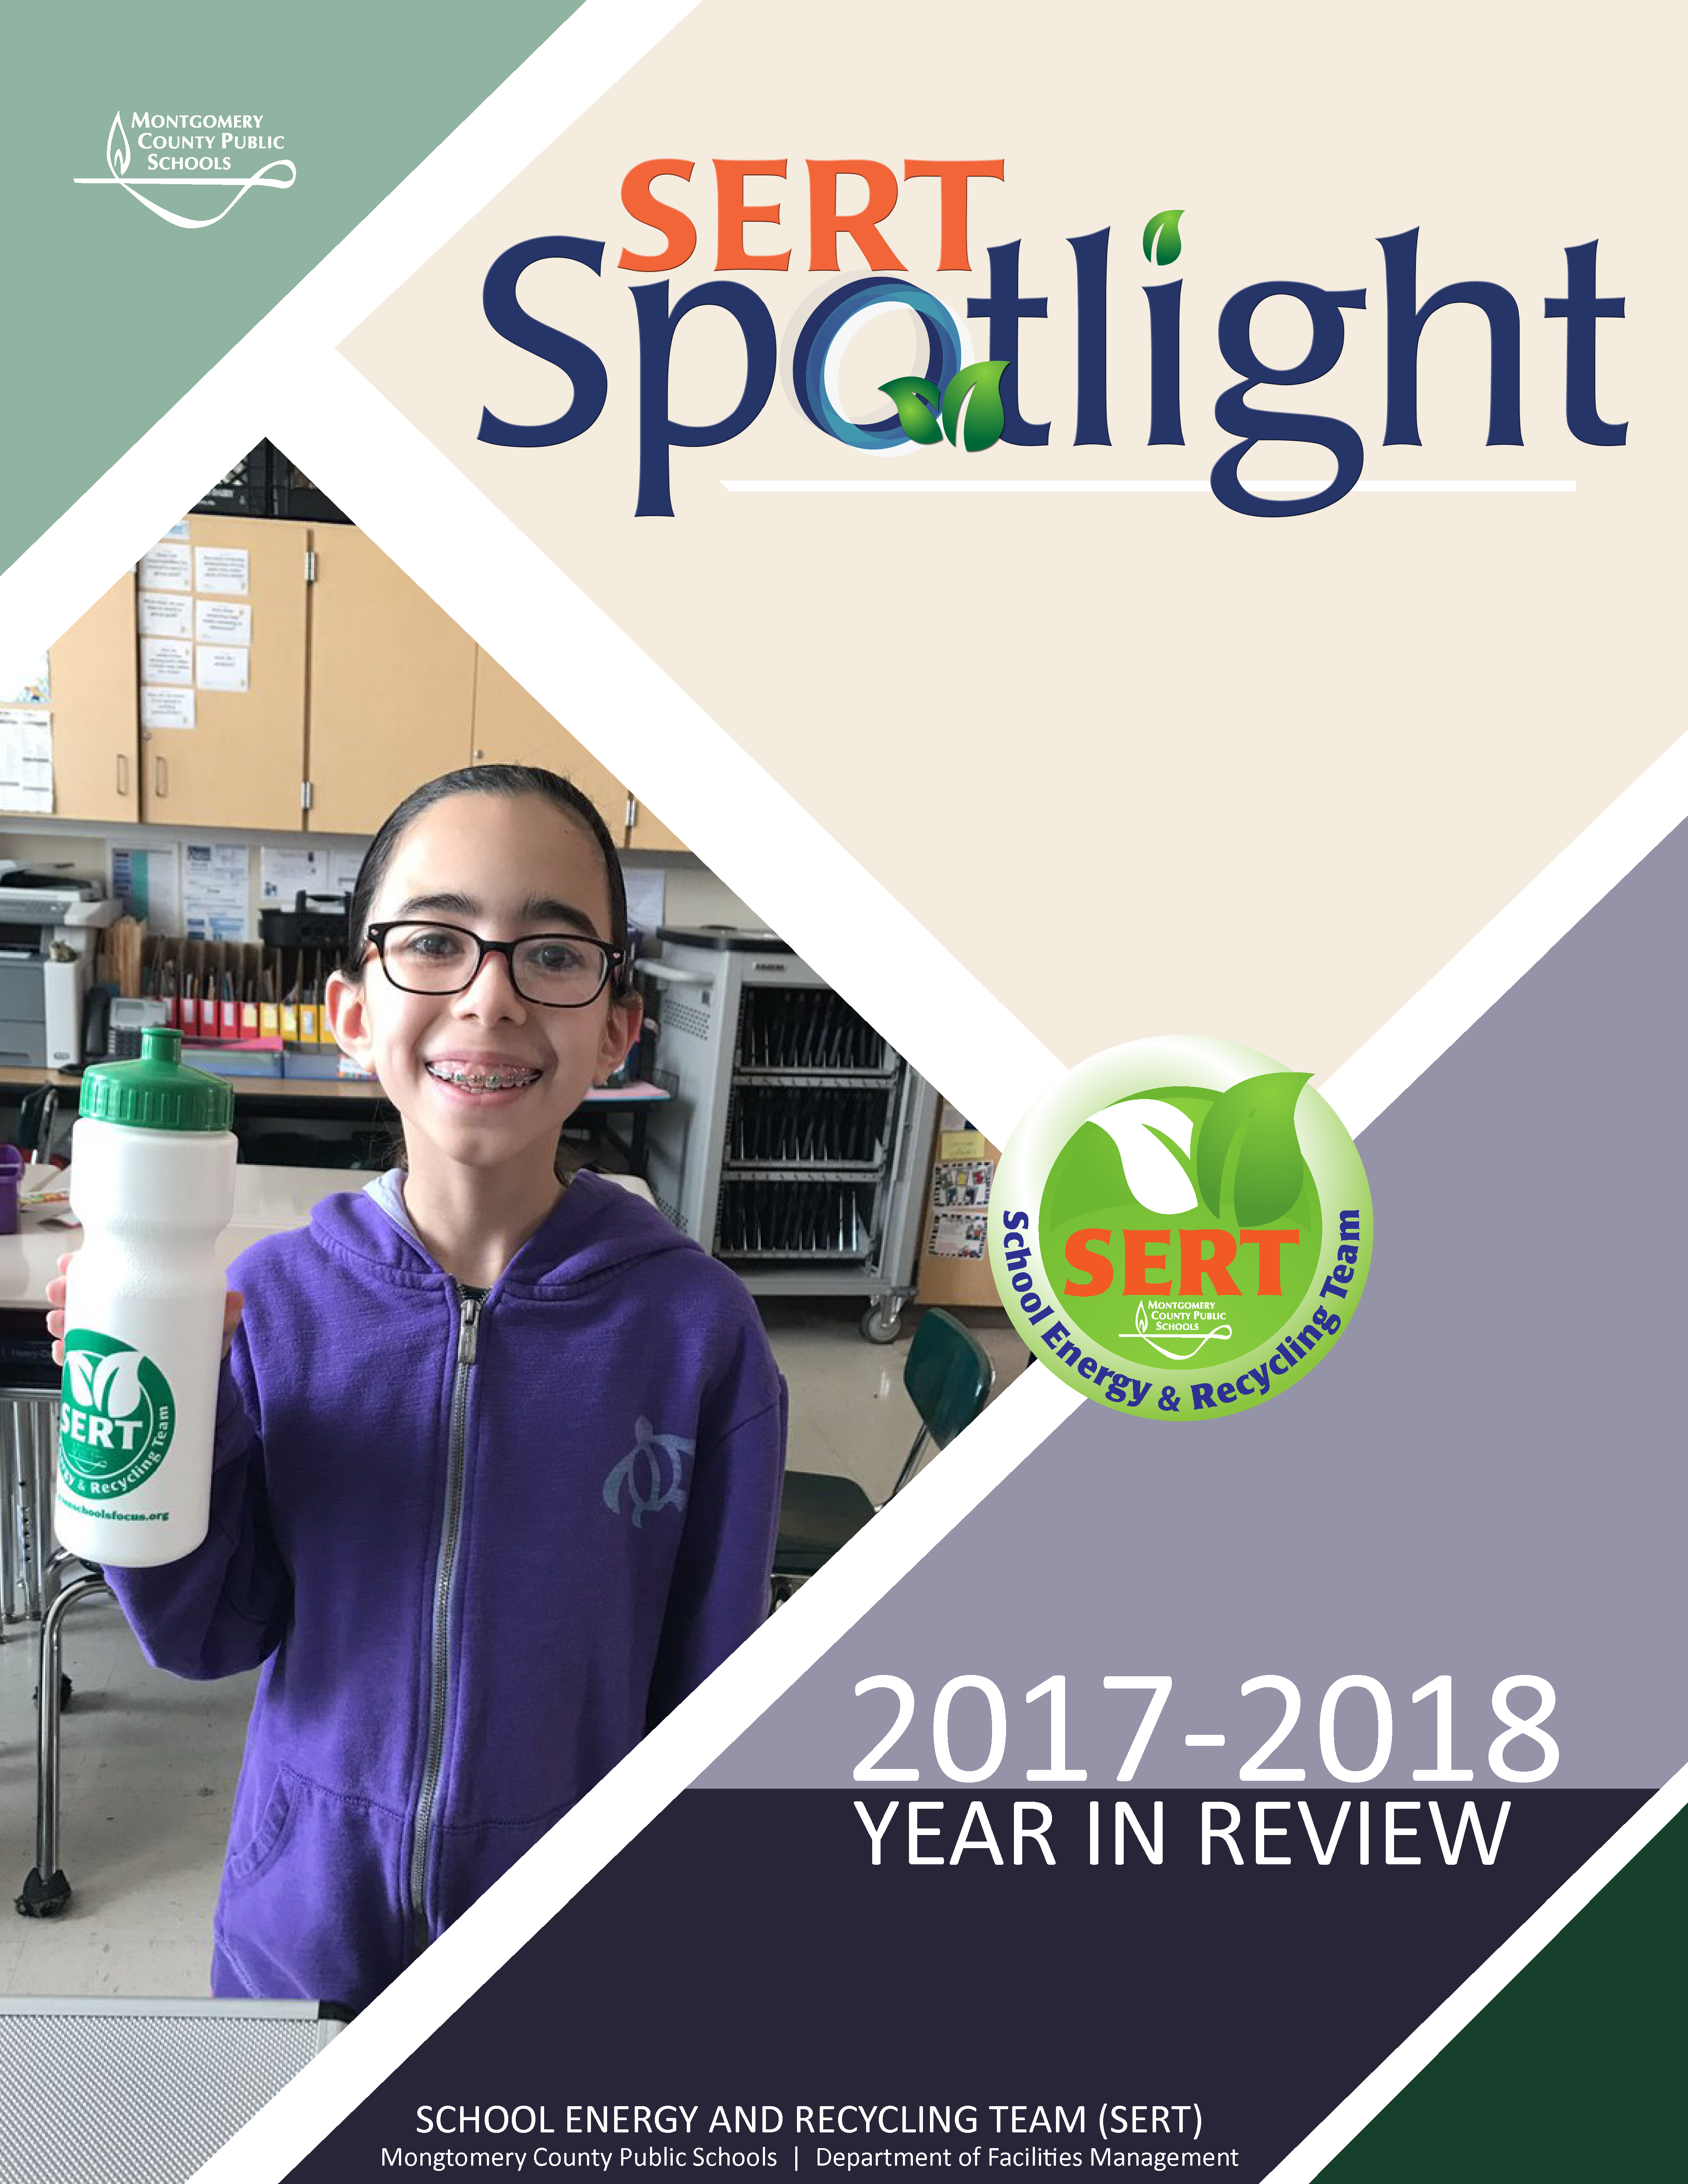 Click here to view all 10 issues of SERT Spotlight for the 2017-2018 school year.